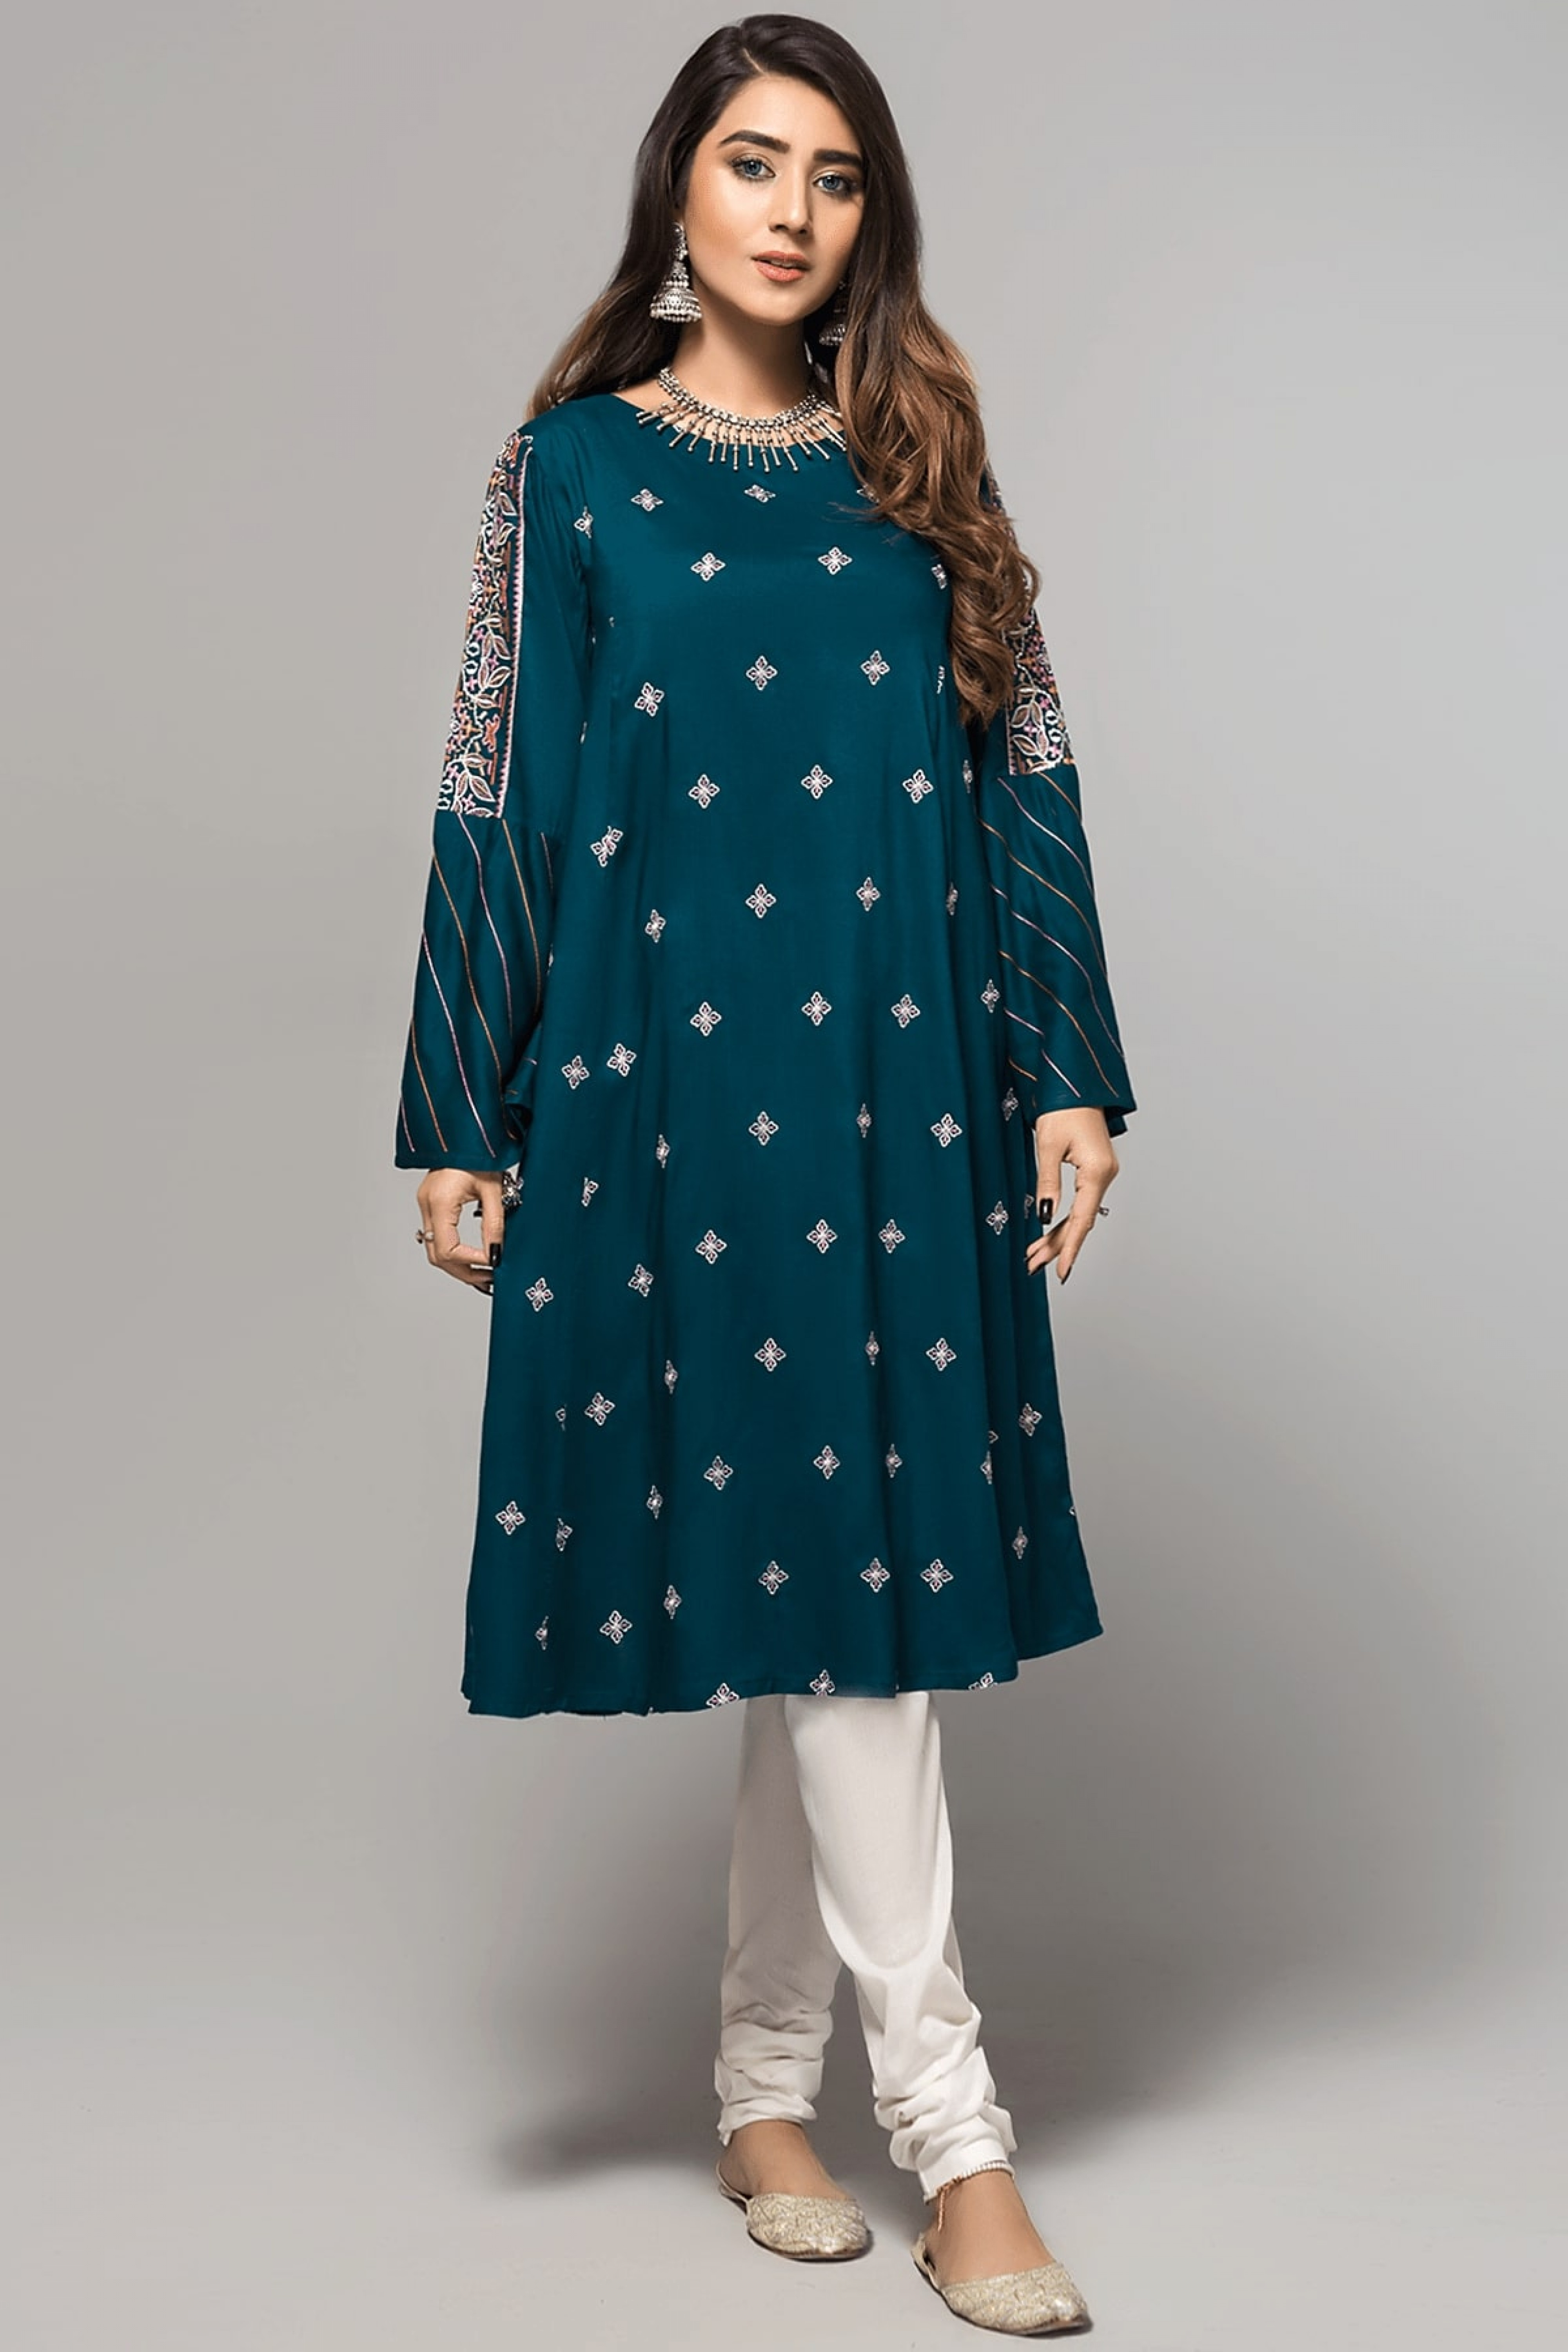 JASMINE FLORA(Embroidered Frock)